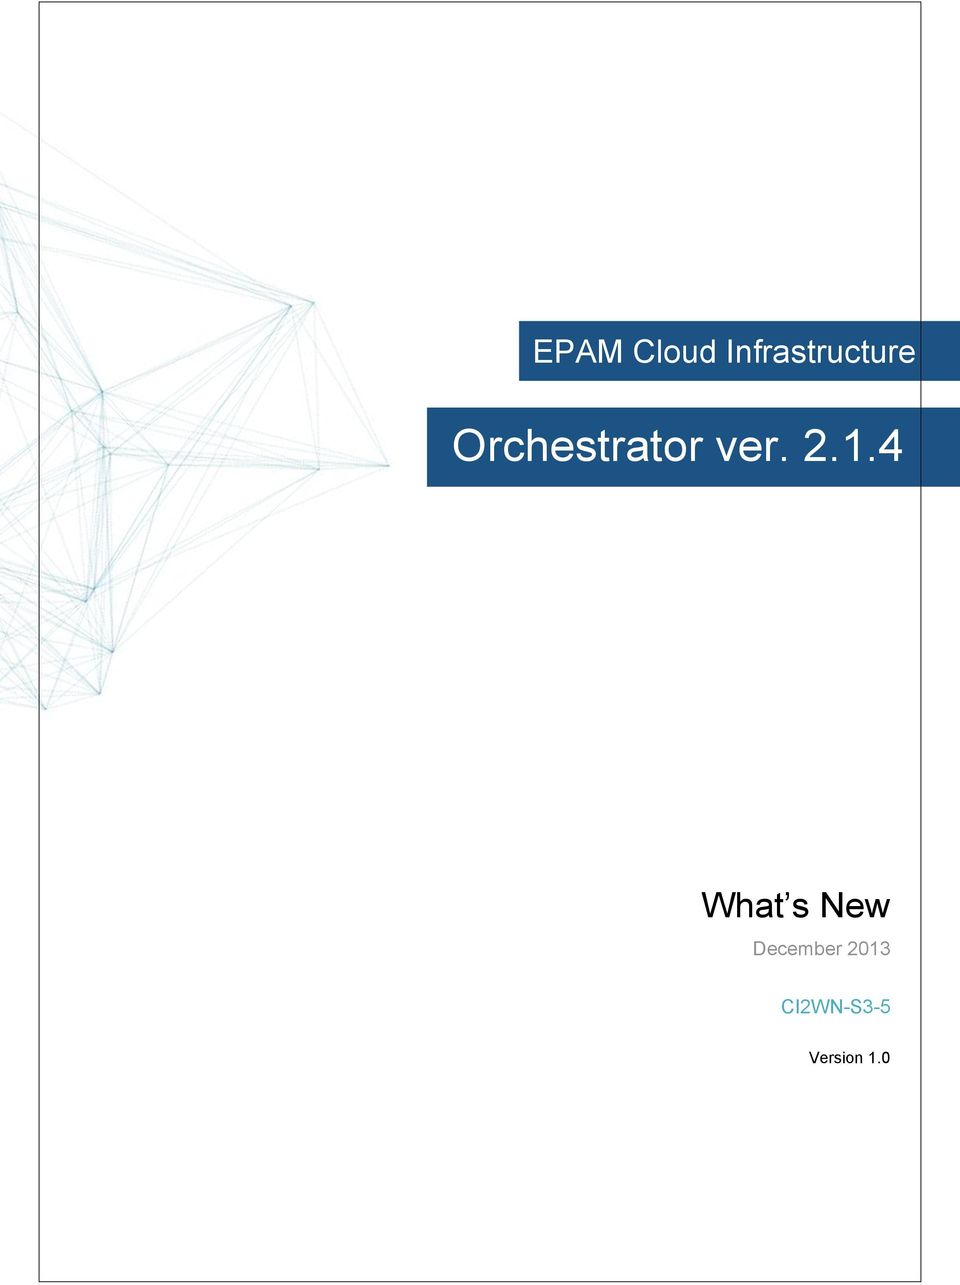 Orchestrator ver. 2.1.